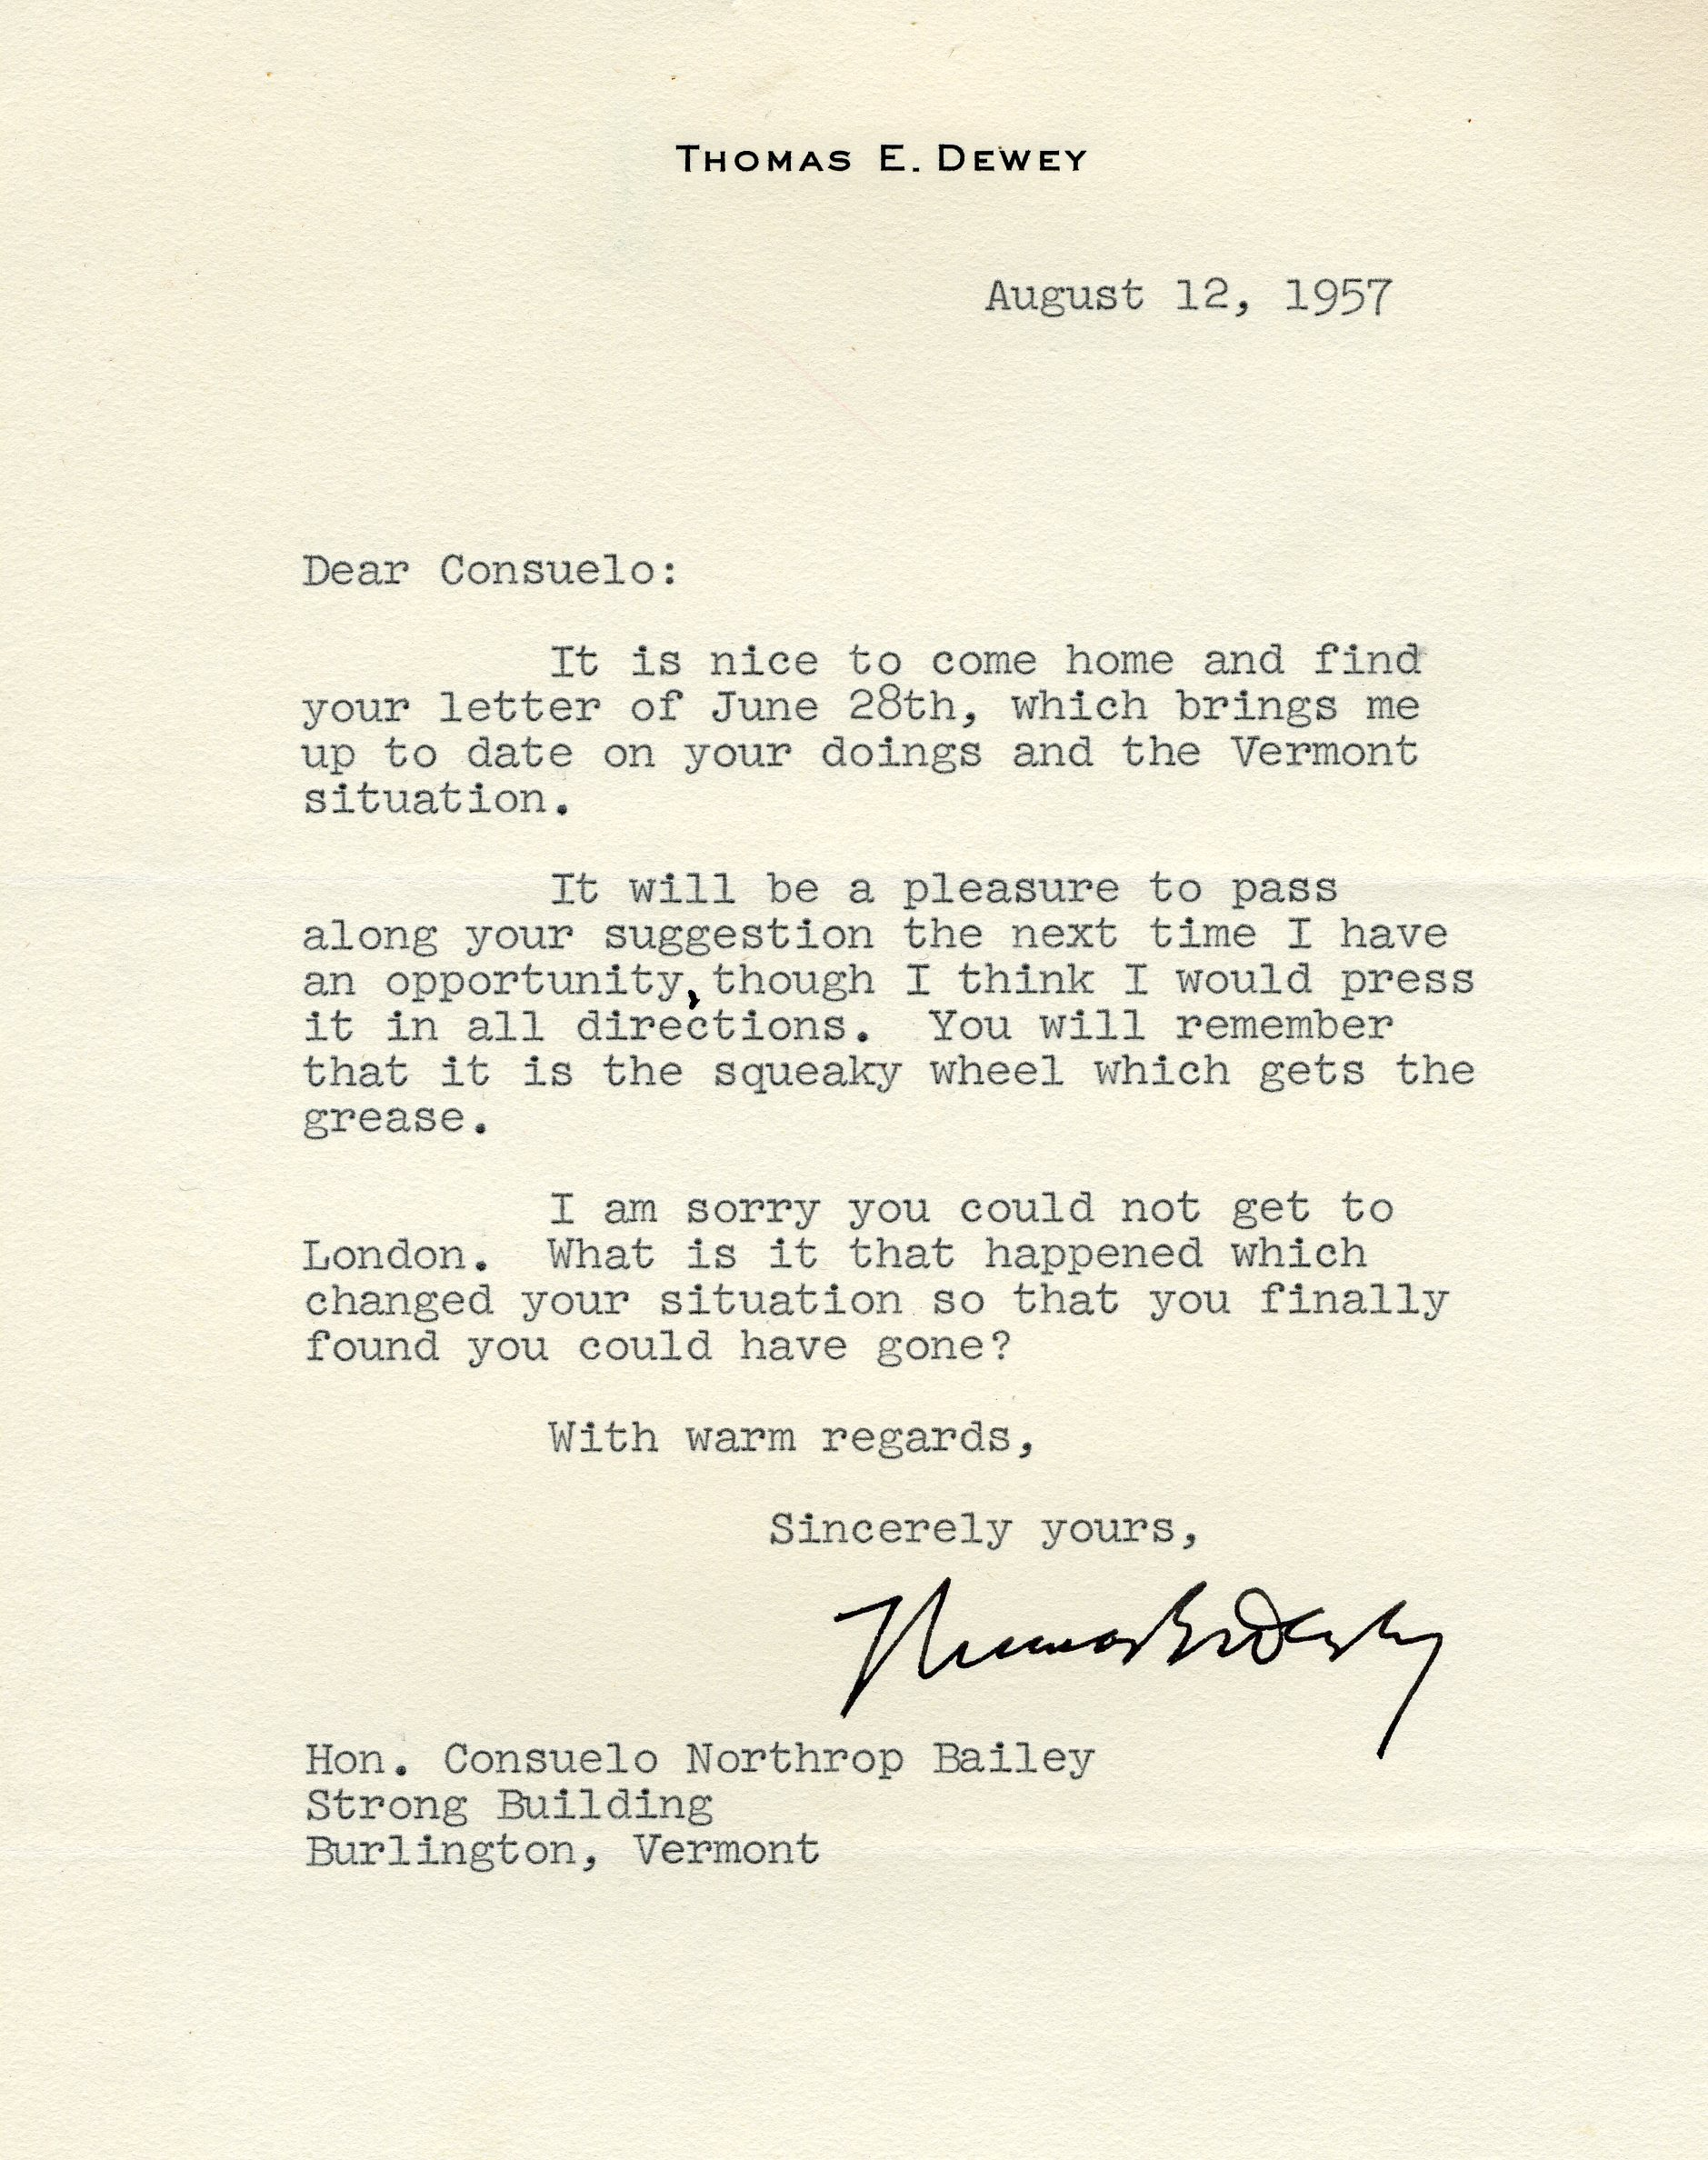 Letter from Thomas Dewey to Consuelo Northrop Bailey, 1957 August 12